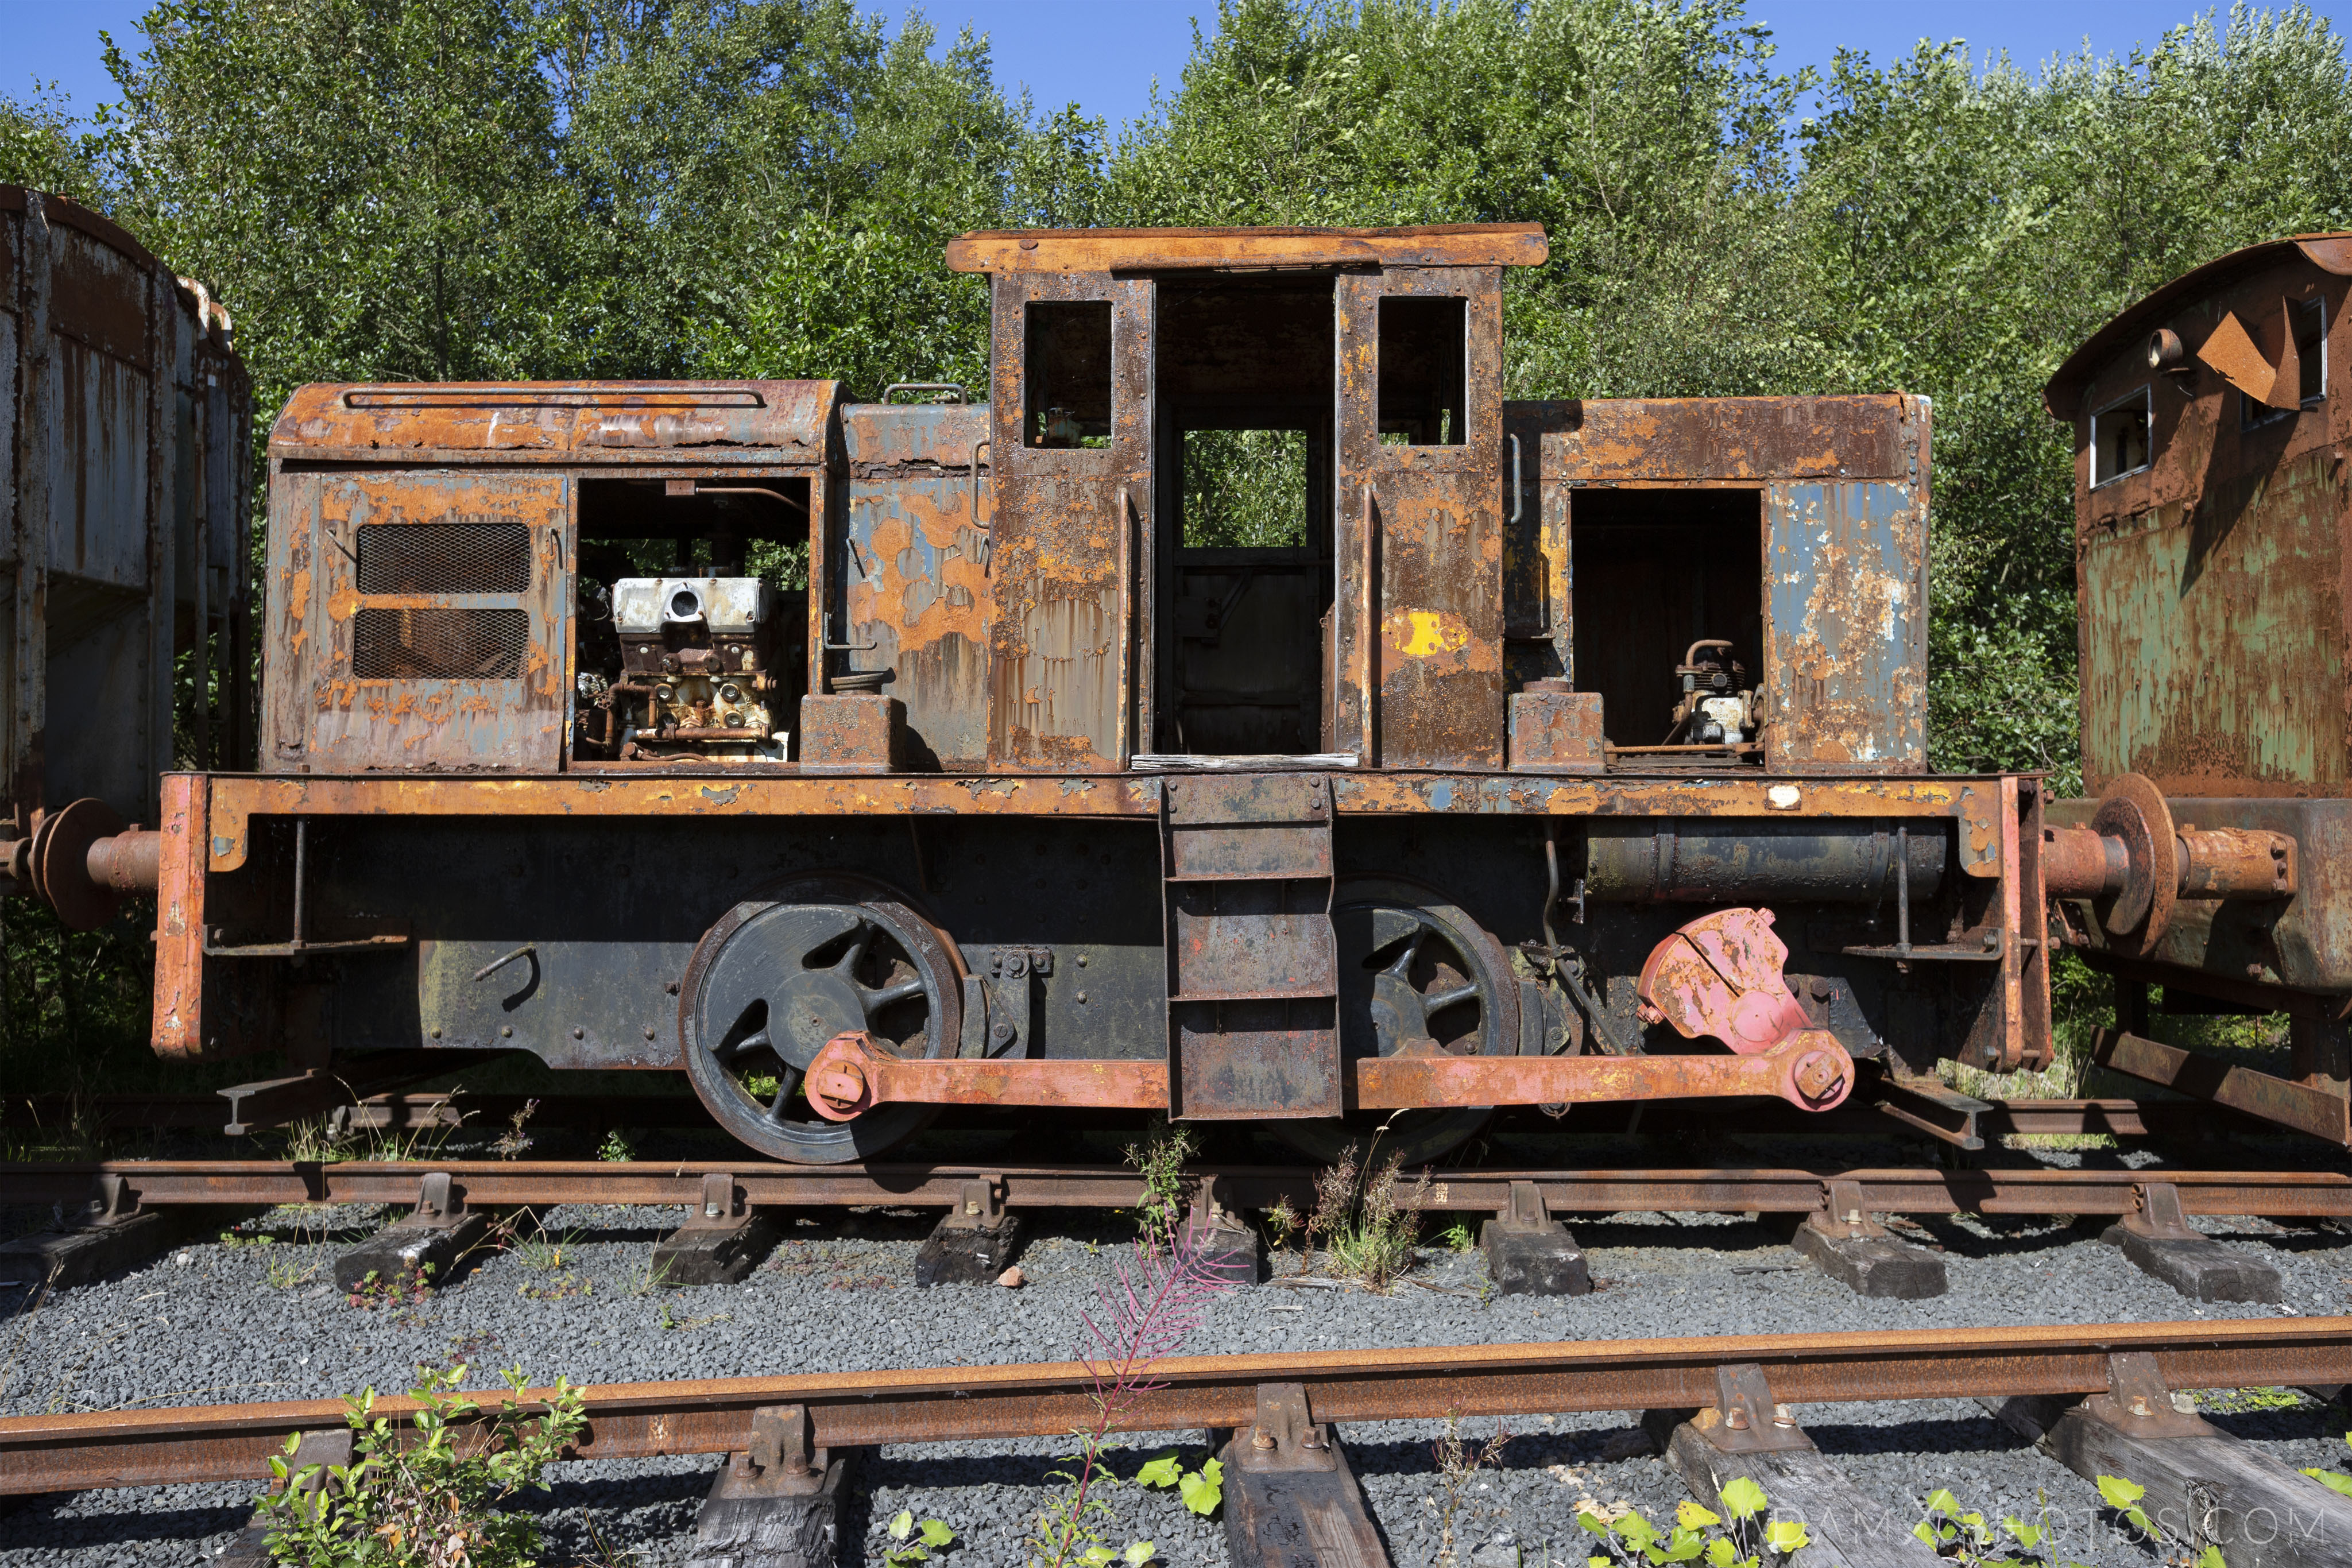 rusting locomotive Abandoned Trains Waterside Dunaskin Adam X Urbex Urban Exploration Access 2018 Abandoned decay lost forgotten derelict location creepy haunting eerie